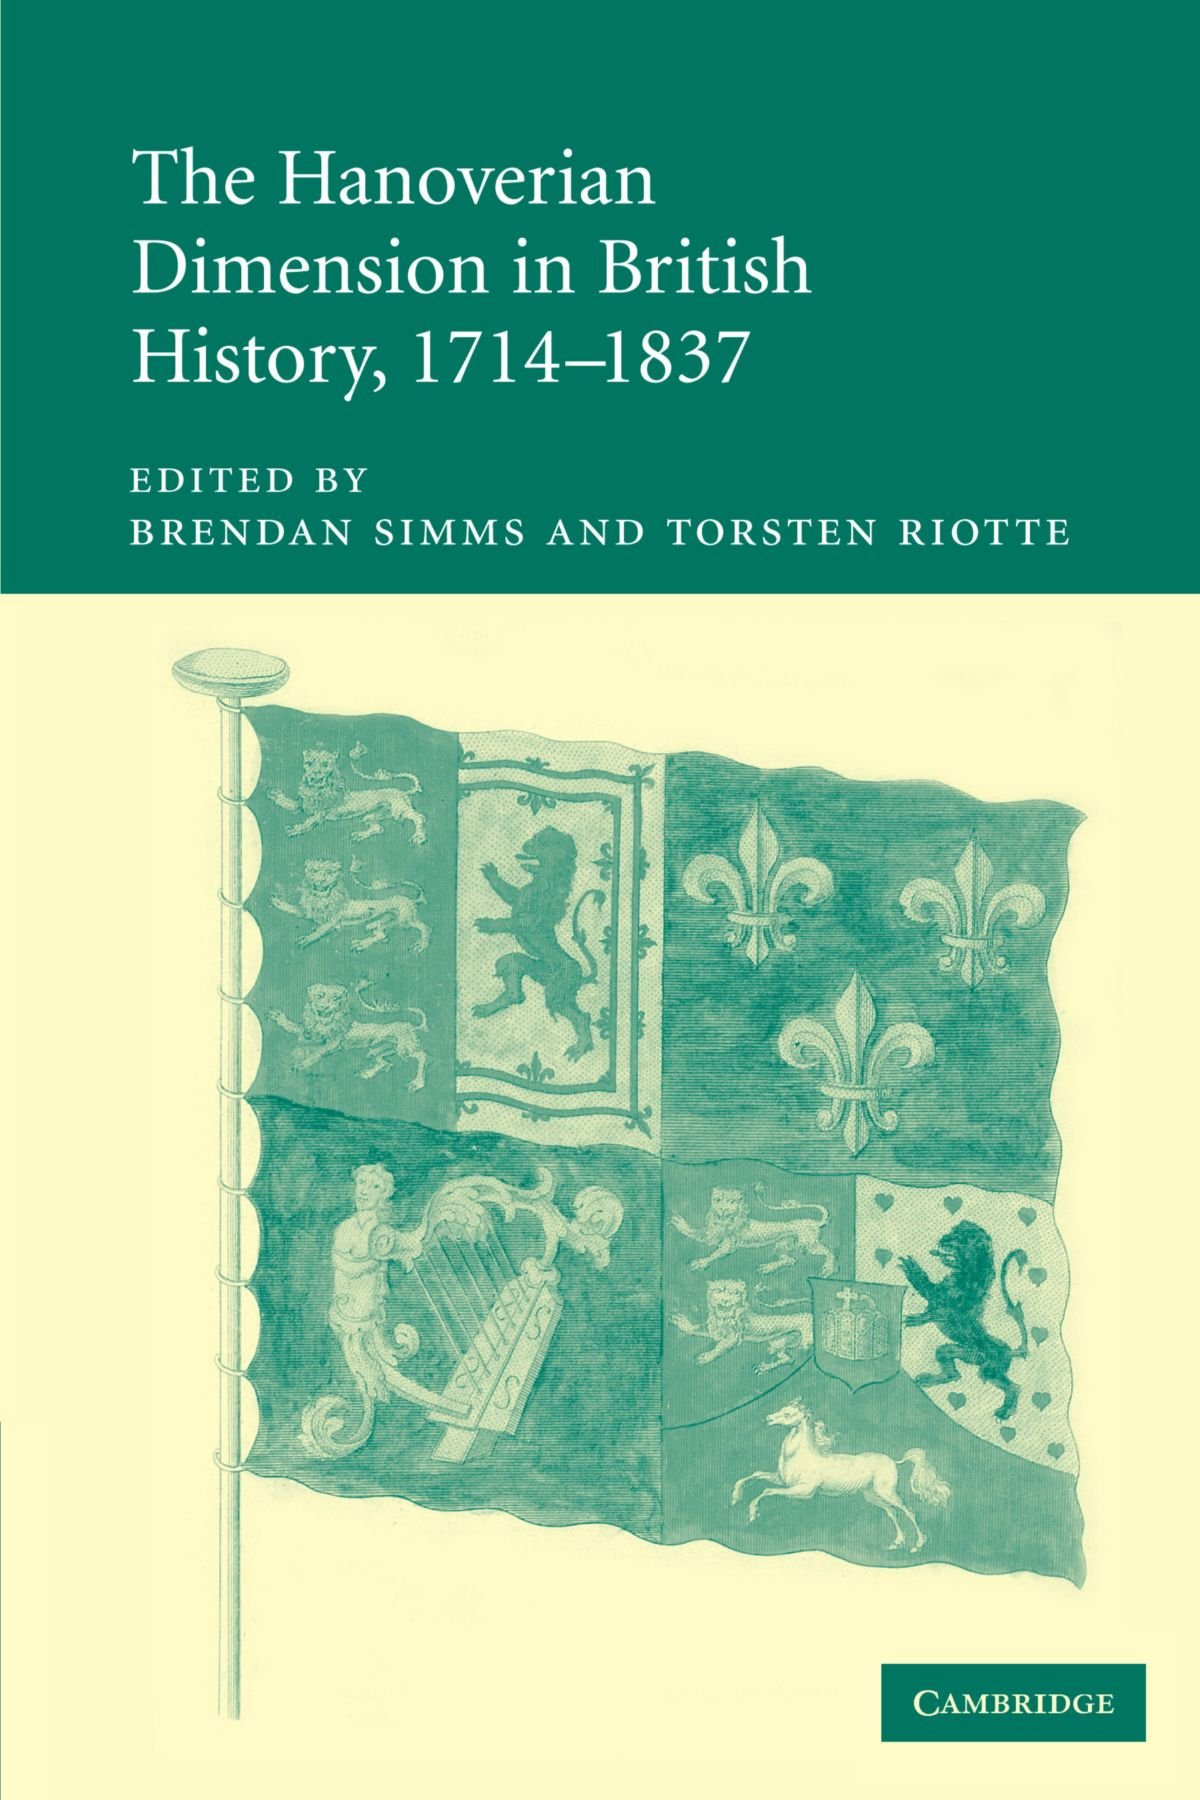 The Hanoverian Dimension in British History, 1714–1837 – Edited by Brendan Simms and Torsten Riotte